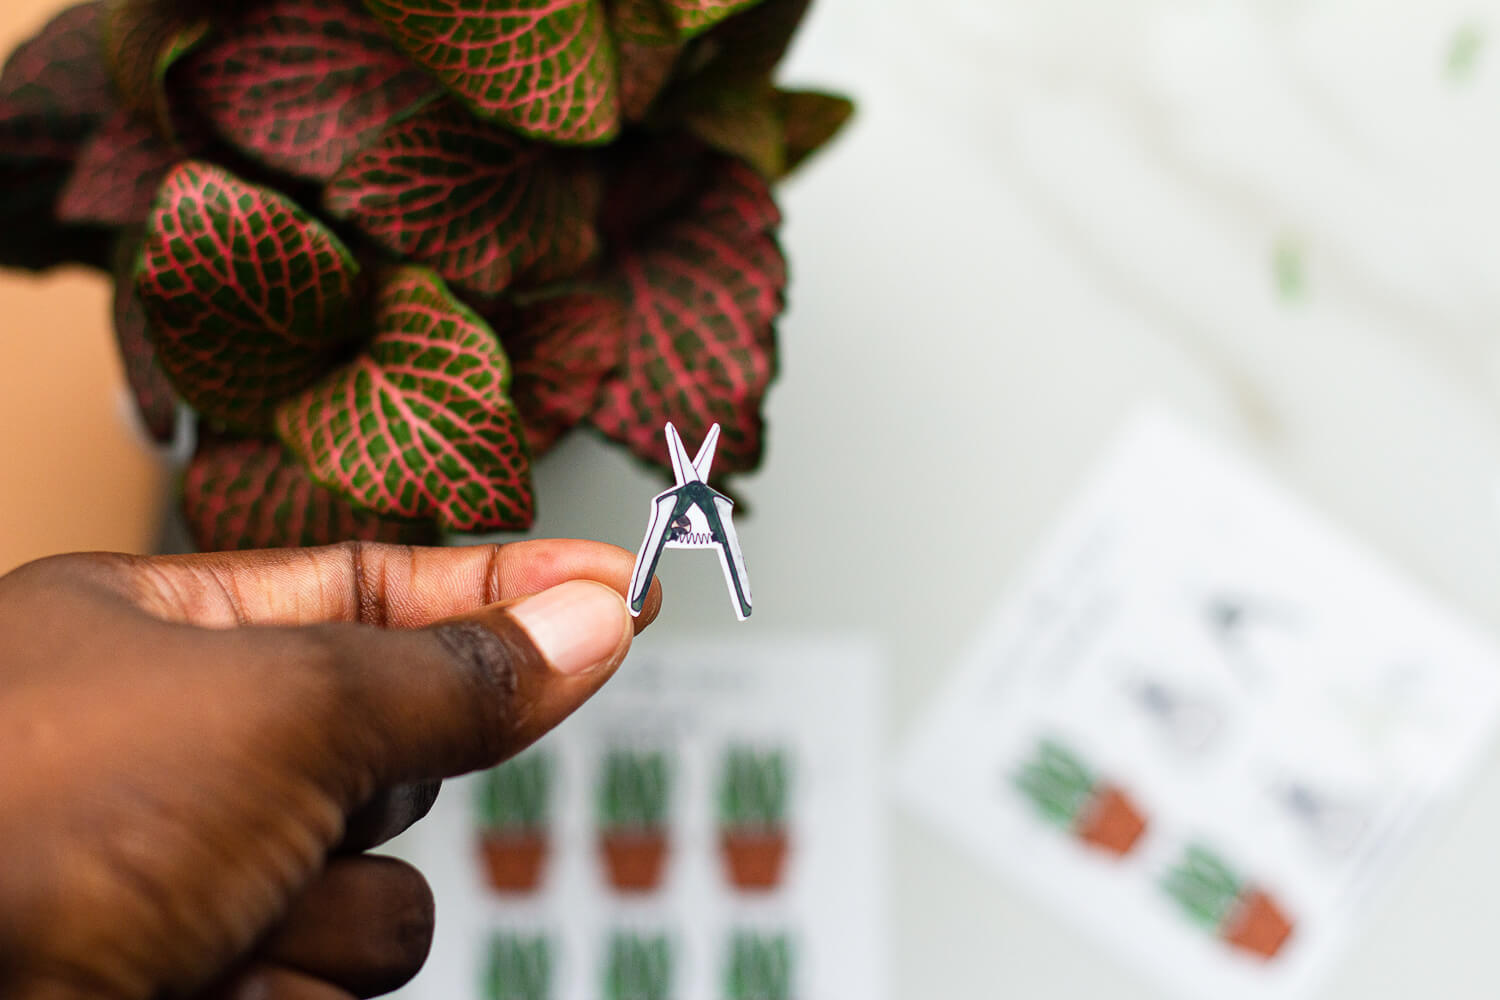 father-of-plants-stickers-mix-shears.jpg